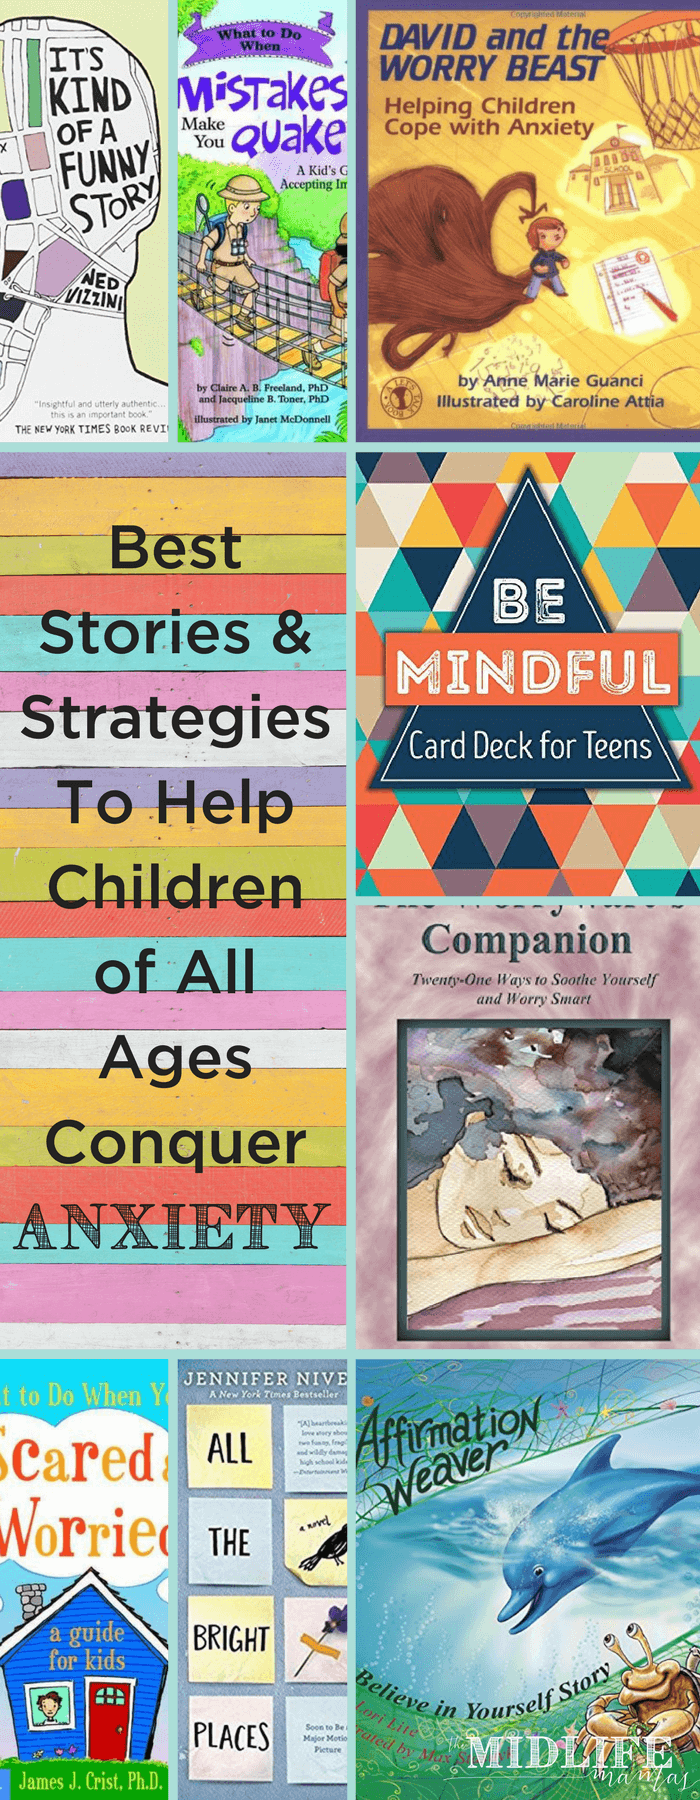 Today's tweens and teens are experiencing more anxiety than ever before. This is the most comprehensive list I've seen with tips and strategies for understanding and overcoming anxiety to help kids (and their adults) of all ages. www.themidlifemamas.com